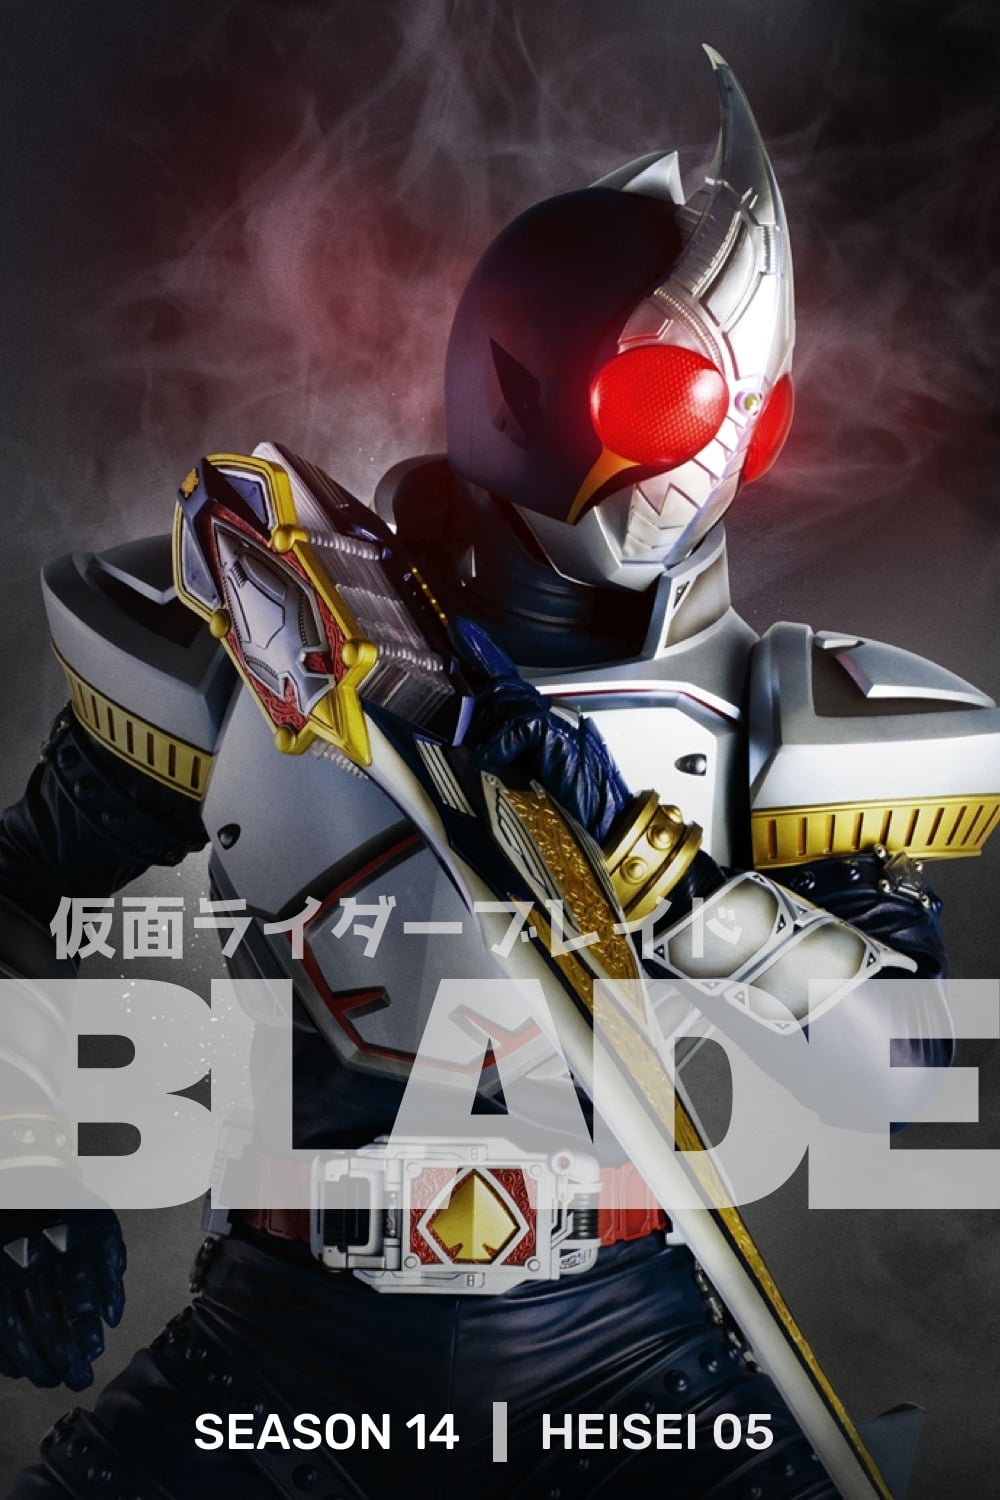 Kamen Rider - Season 21 Episode 30 : King, Panda, Memory of Flame Season 14